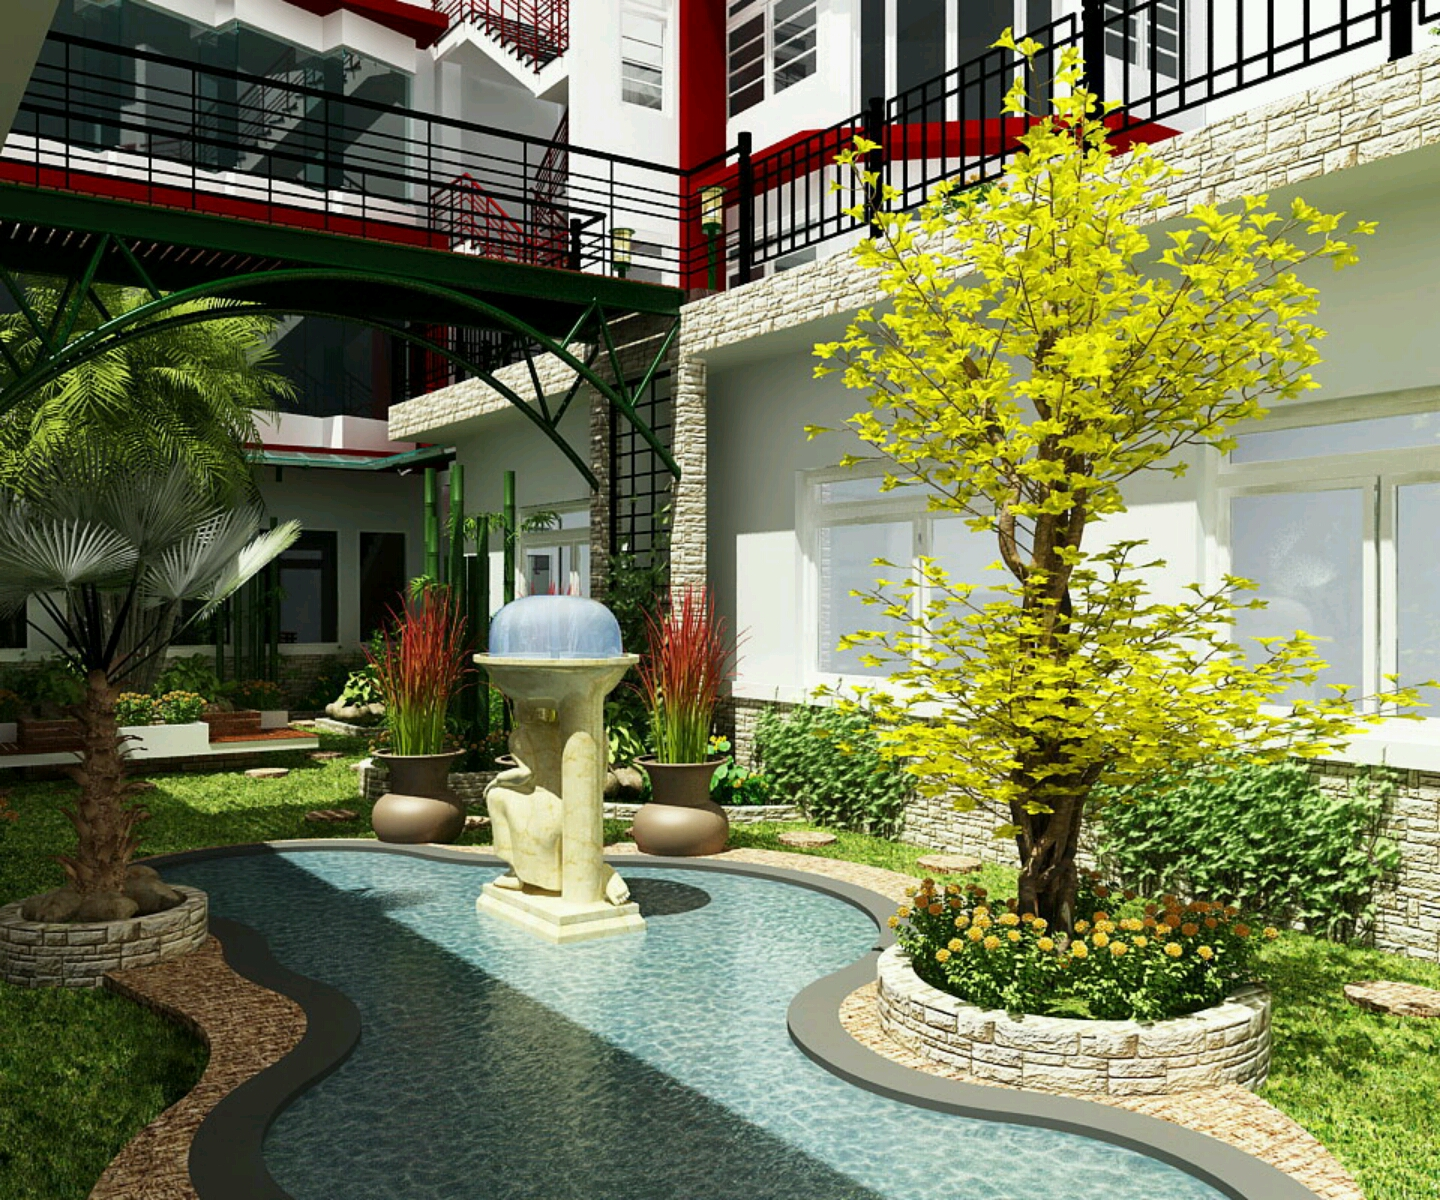 New home designs latest modern luxury homes beautiful garden designs ideas Beautiful homes and gardens